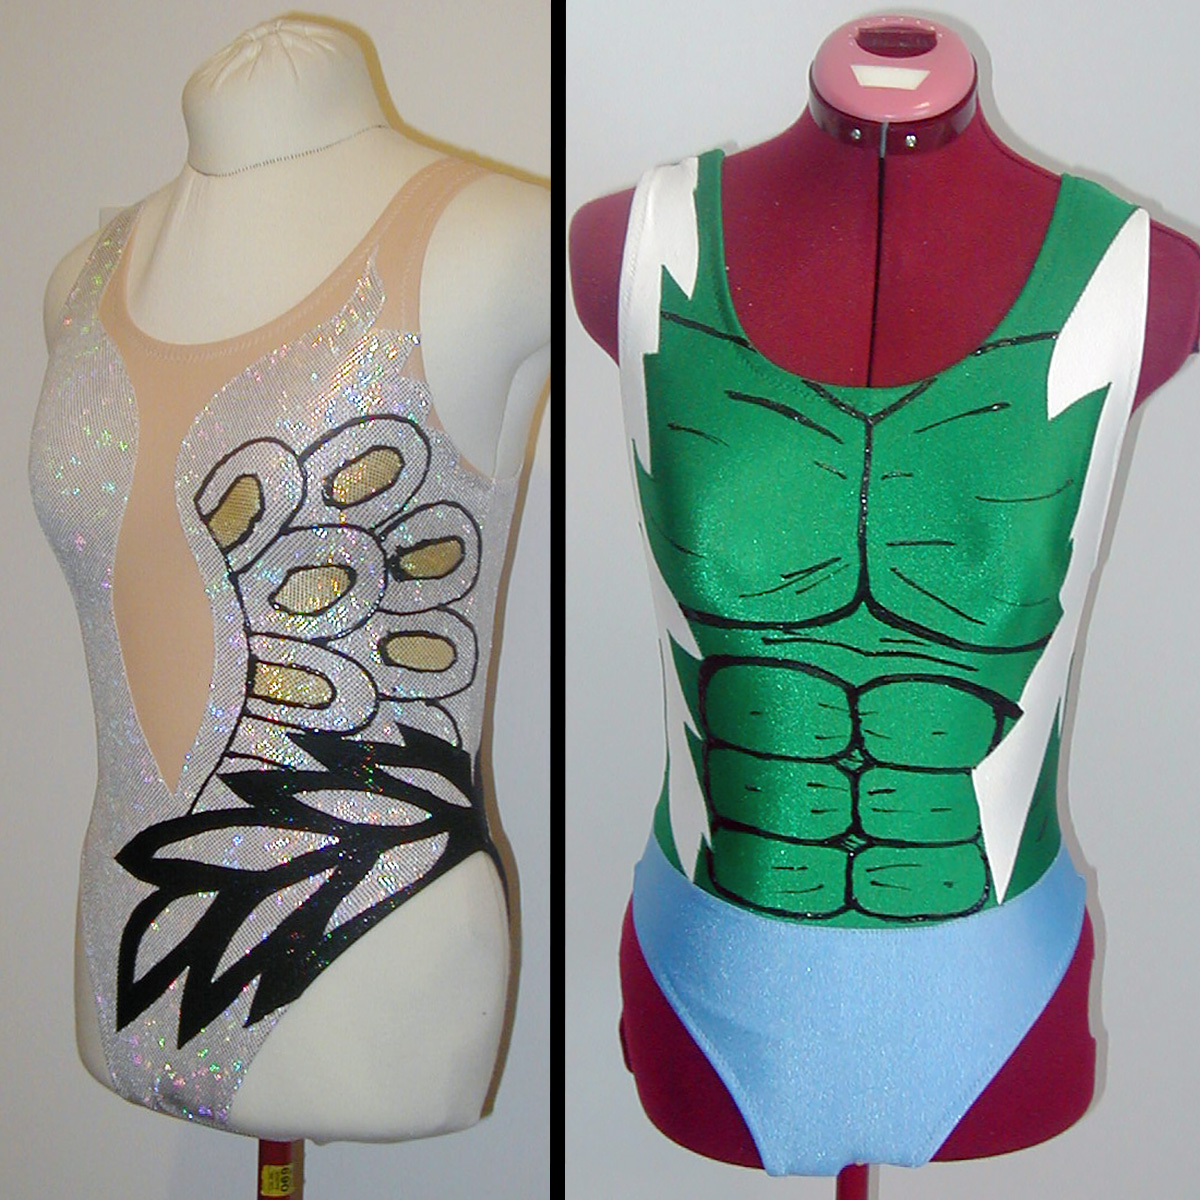 A two part image showing a white Swan lake inspired synchro swim suit next to a white, green, and blue Incredible Hulk swimsuit.